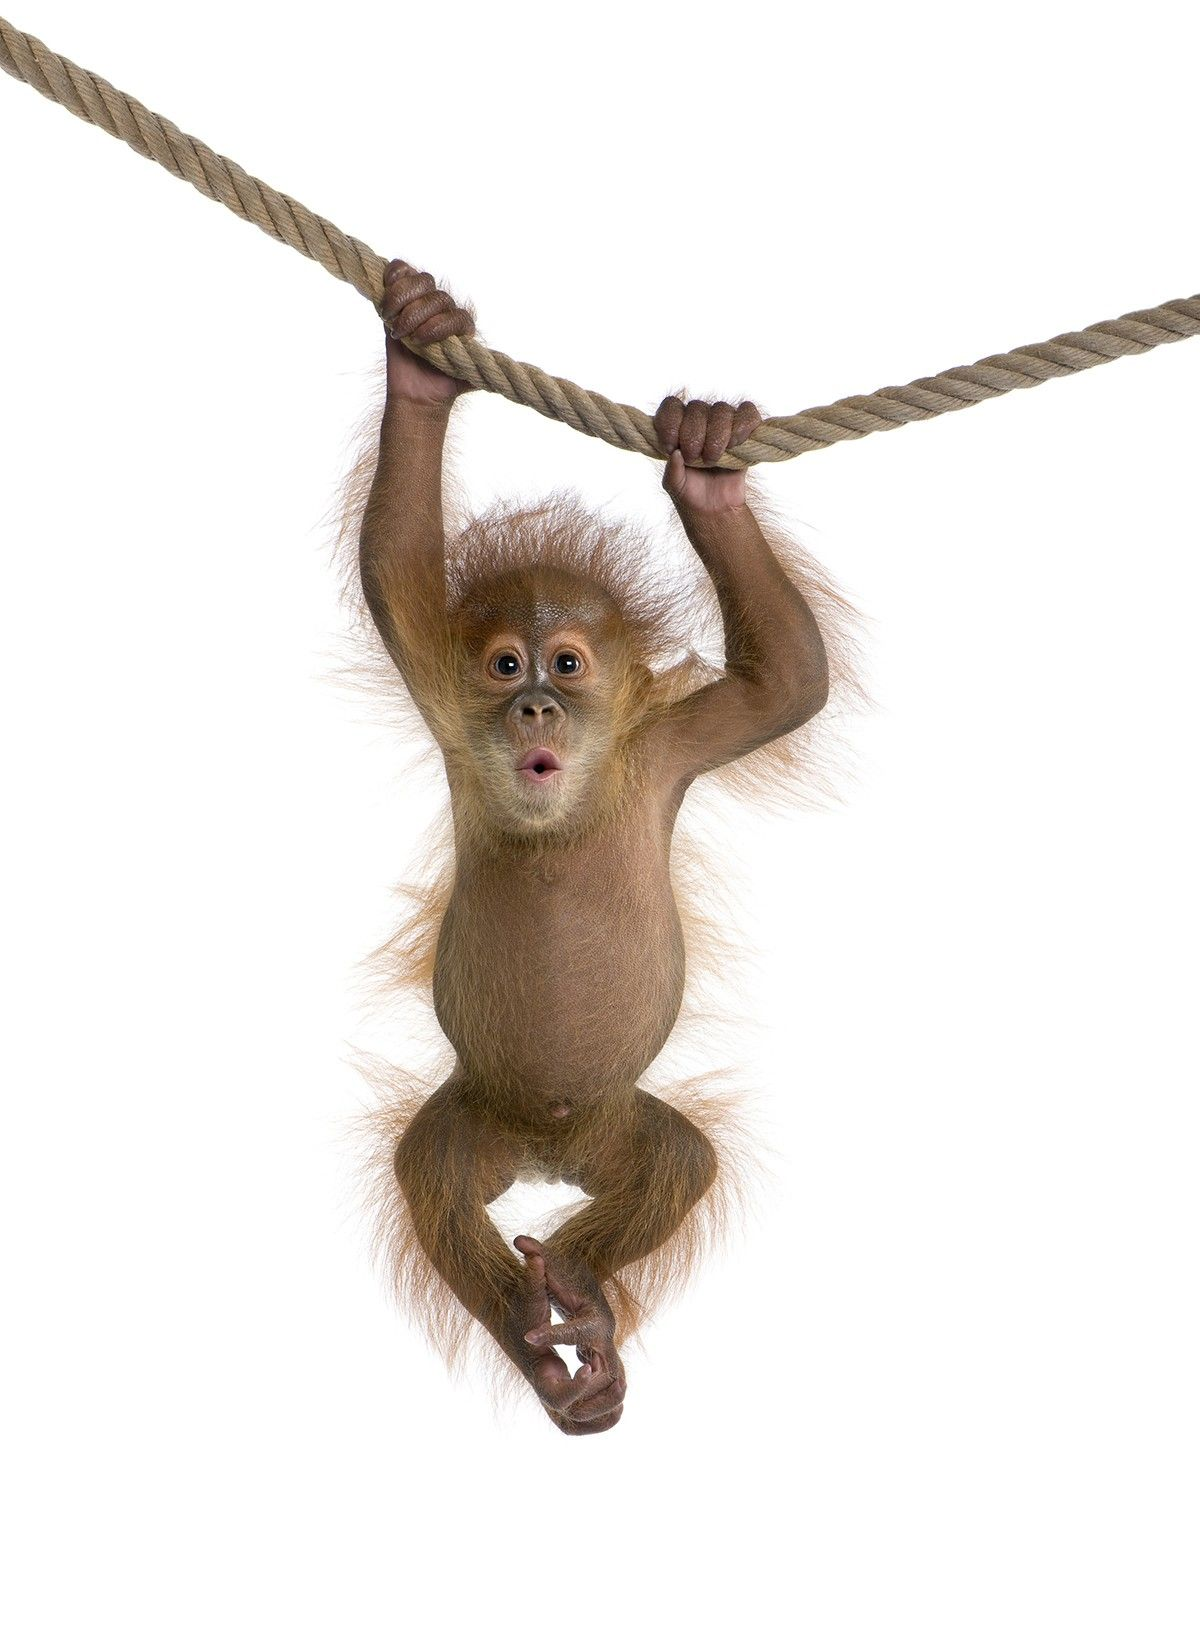 Quit Monkeying Around